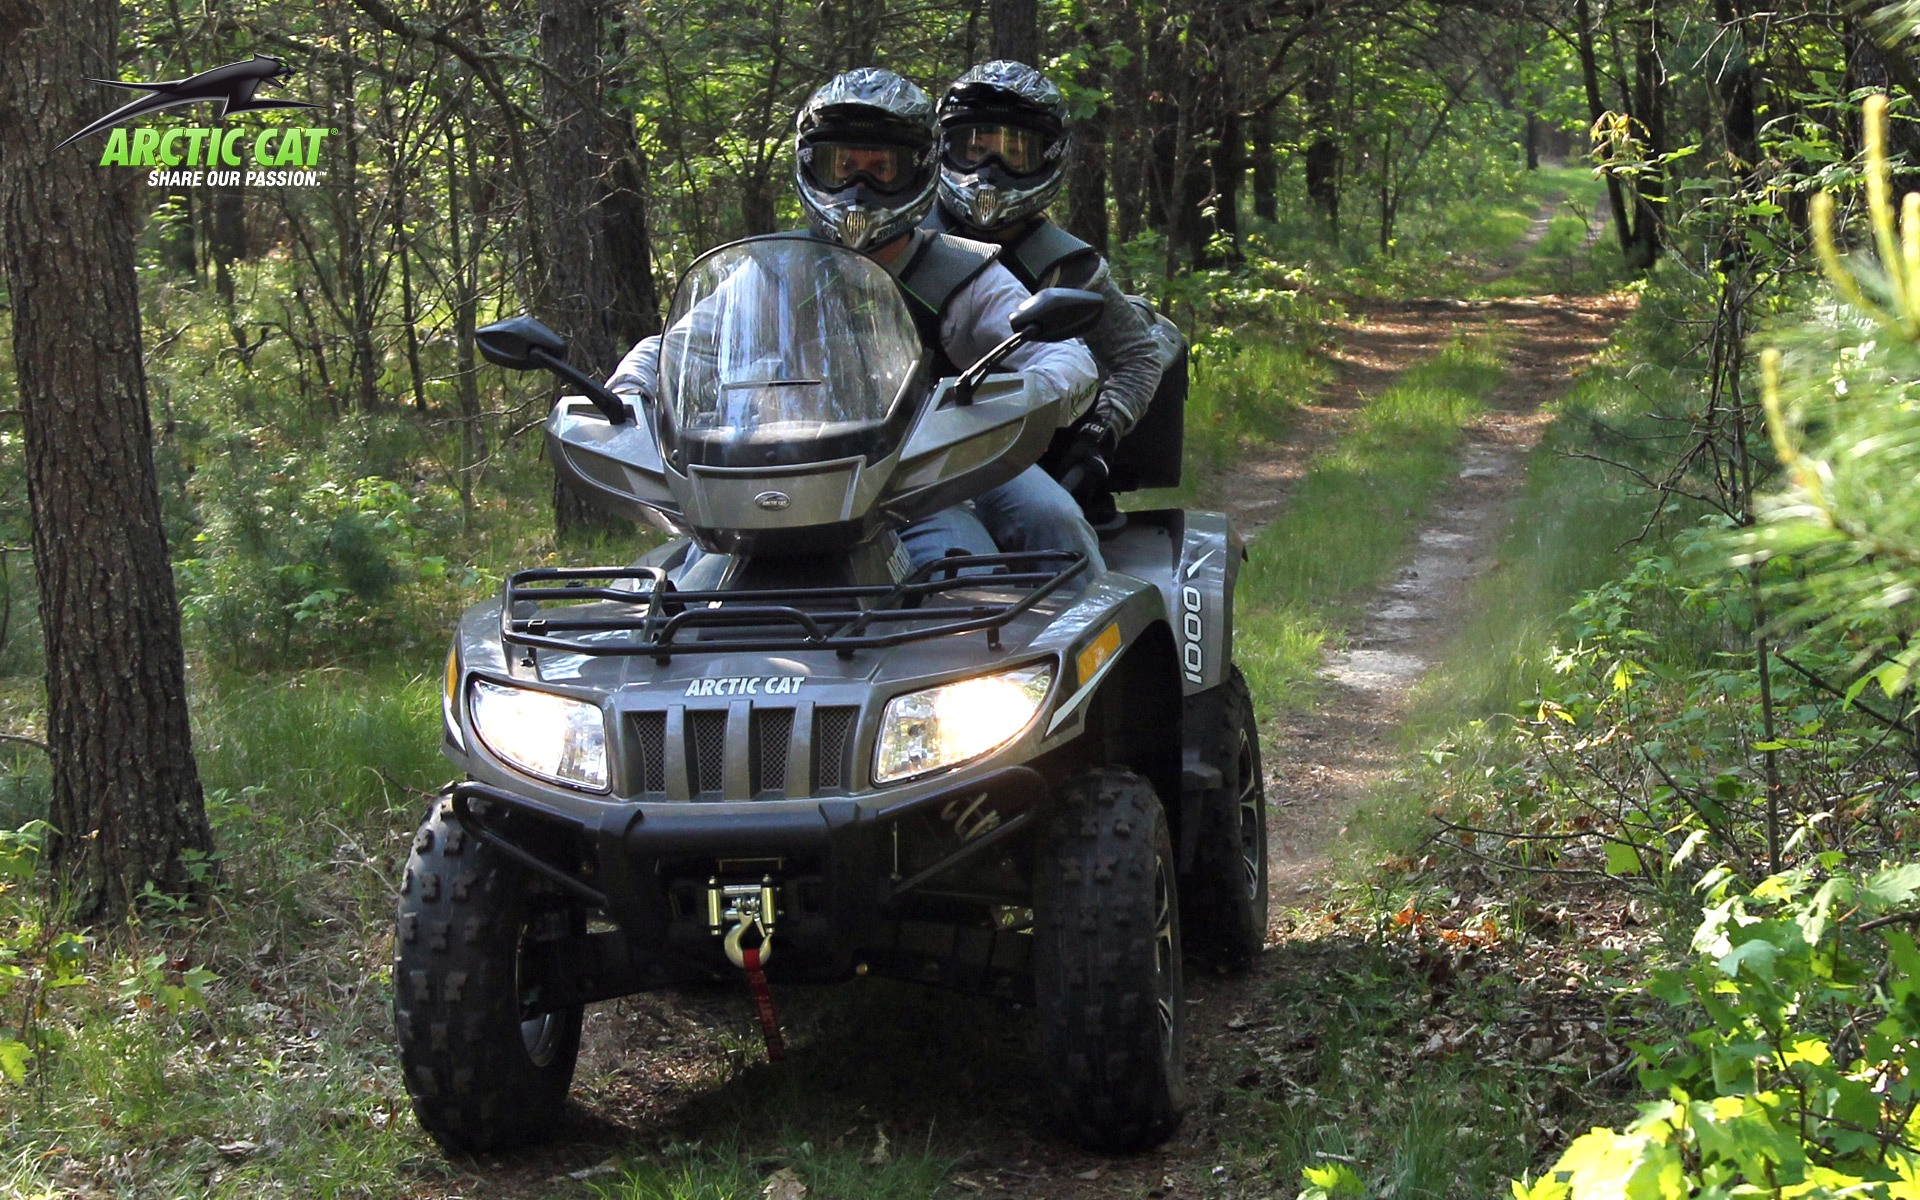 2013 Arctic Cat Trv 1000 Limited The Two Up Limo Atv